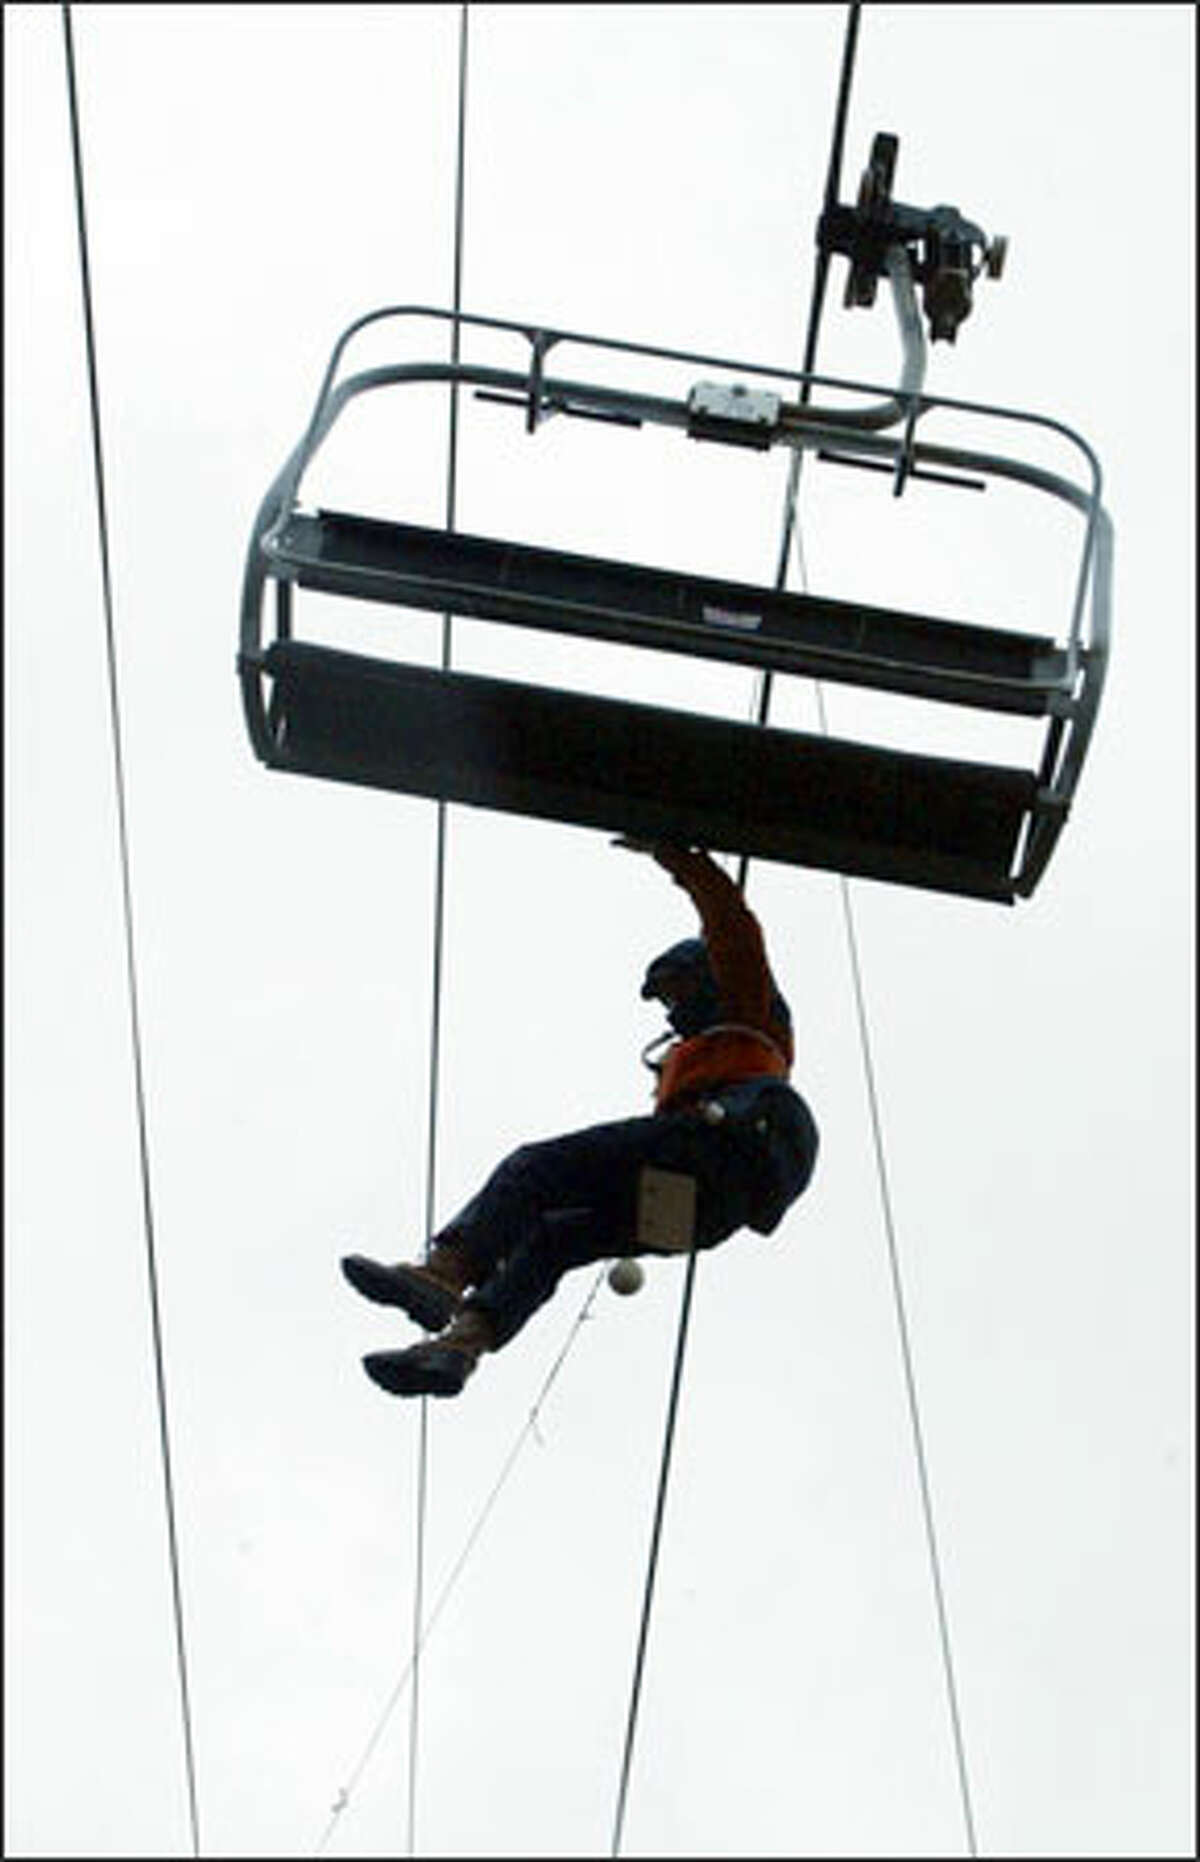 Dave Buck is lowered off the chairlift at Summit Central at Snoqualmie Pass during training exercises for volunteers. The chair evacuation is one of many skills that members of the ski patrol must learn.